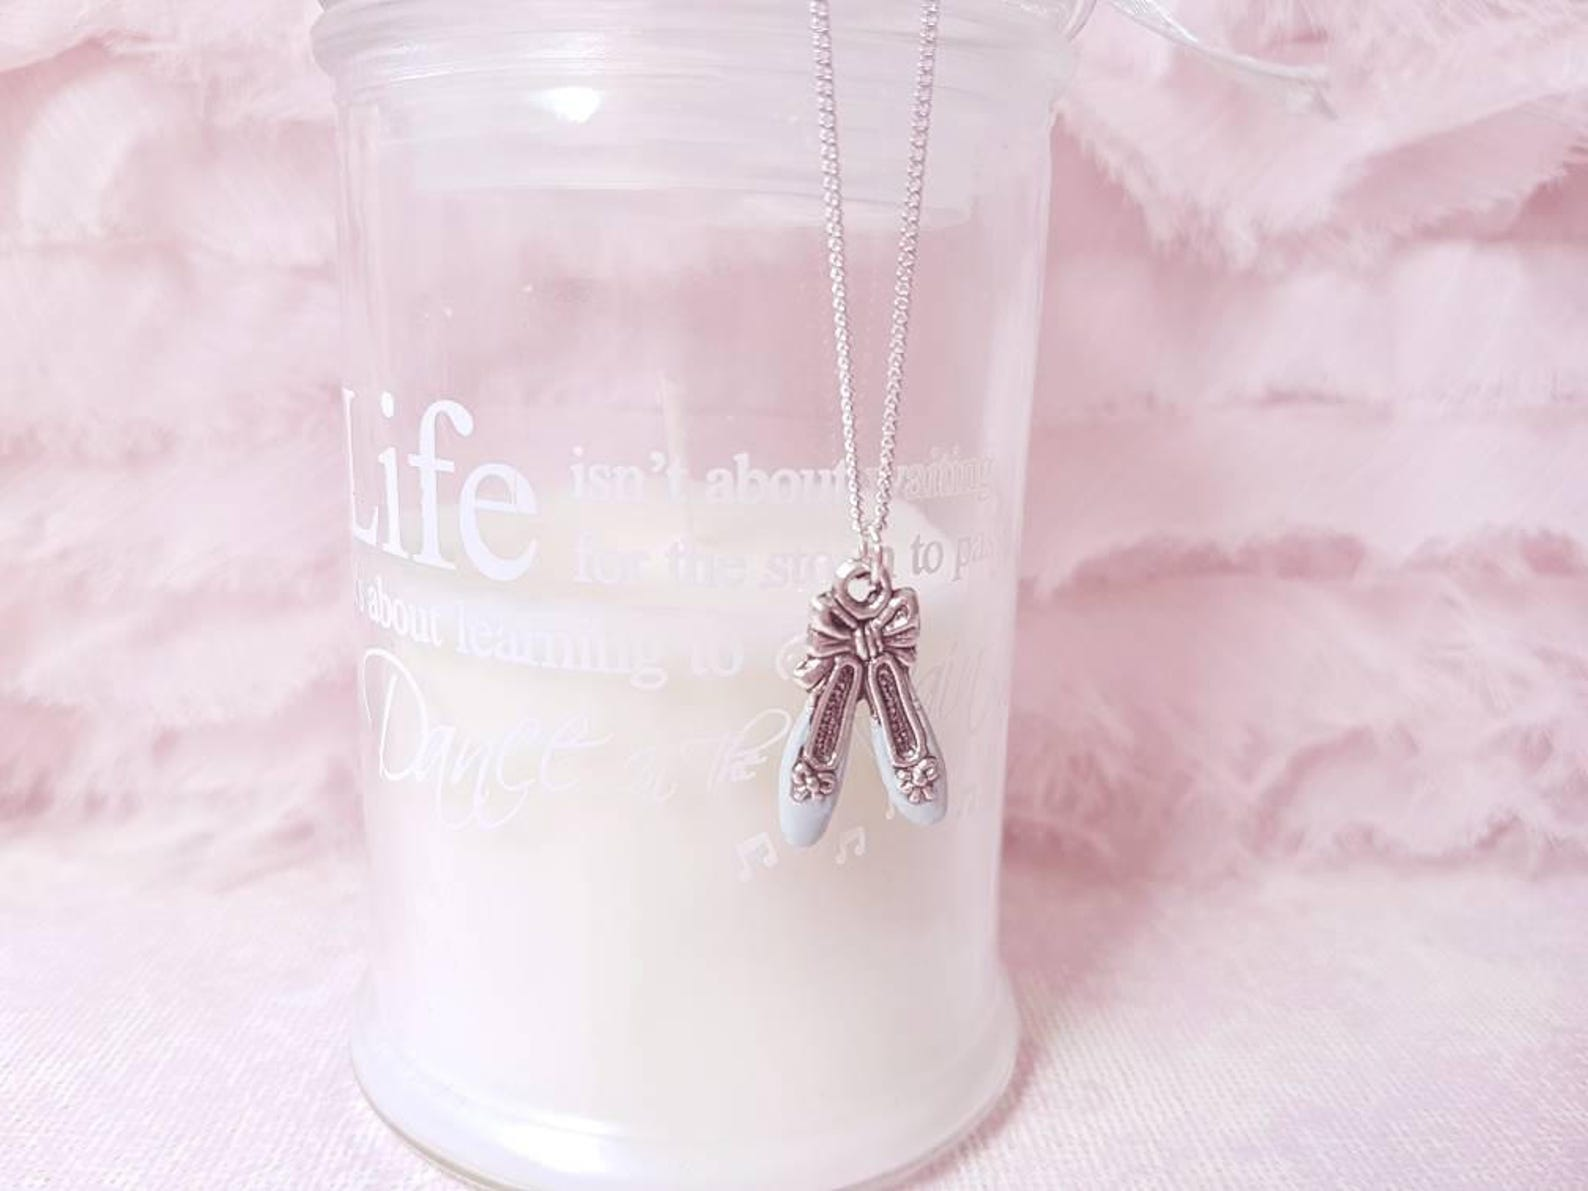 ballet shoes necklace - ballerina shoes necklace - ballerina pendant - ballerina shoe charm - ballet dancer gift - gift for ball